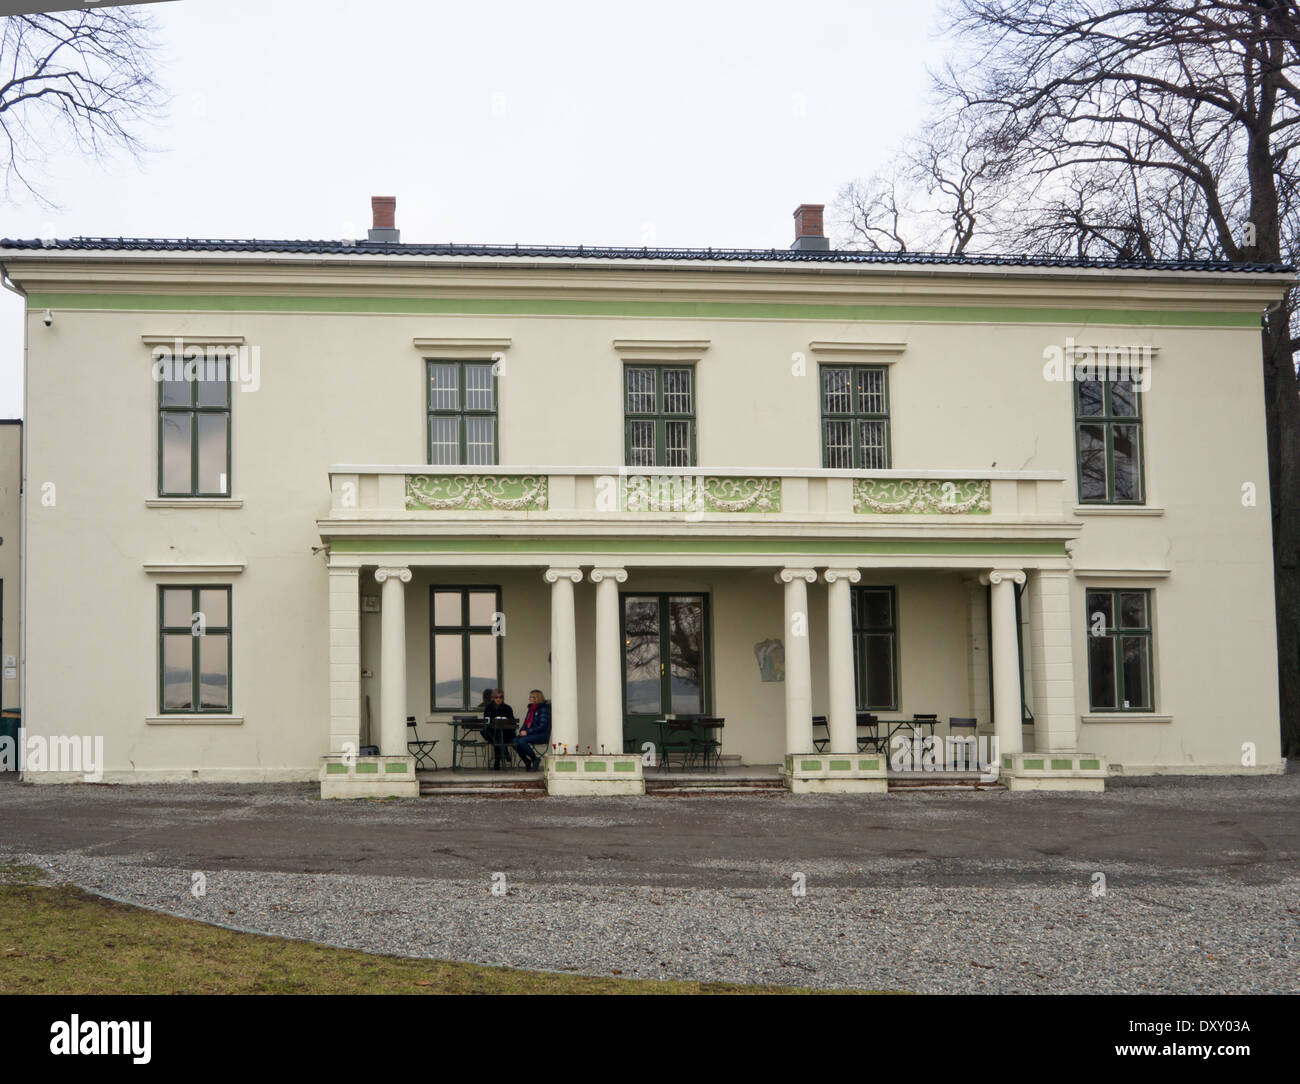 Galleri F 15, art gallery with exhibitions with contemporary artists in the former farm residence at Jeløya, Moss Norway - Stock Image